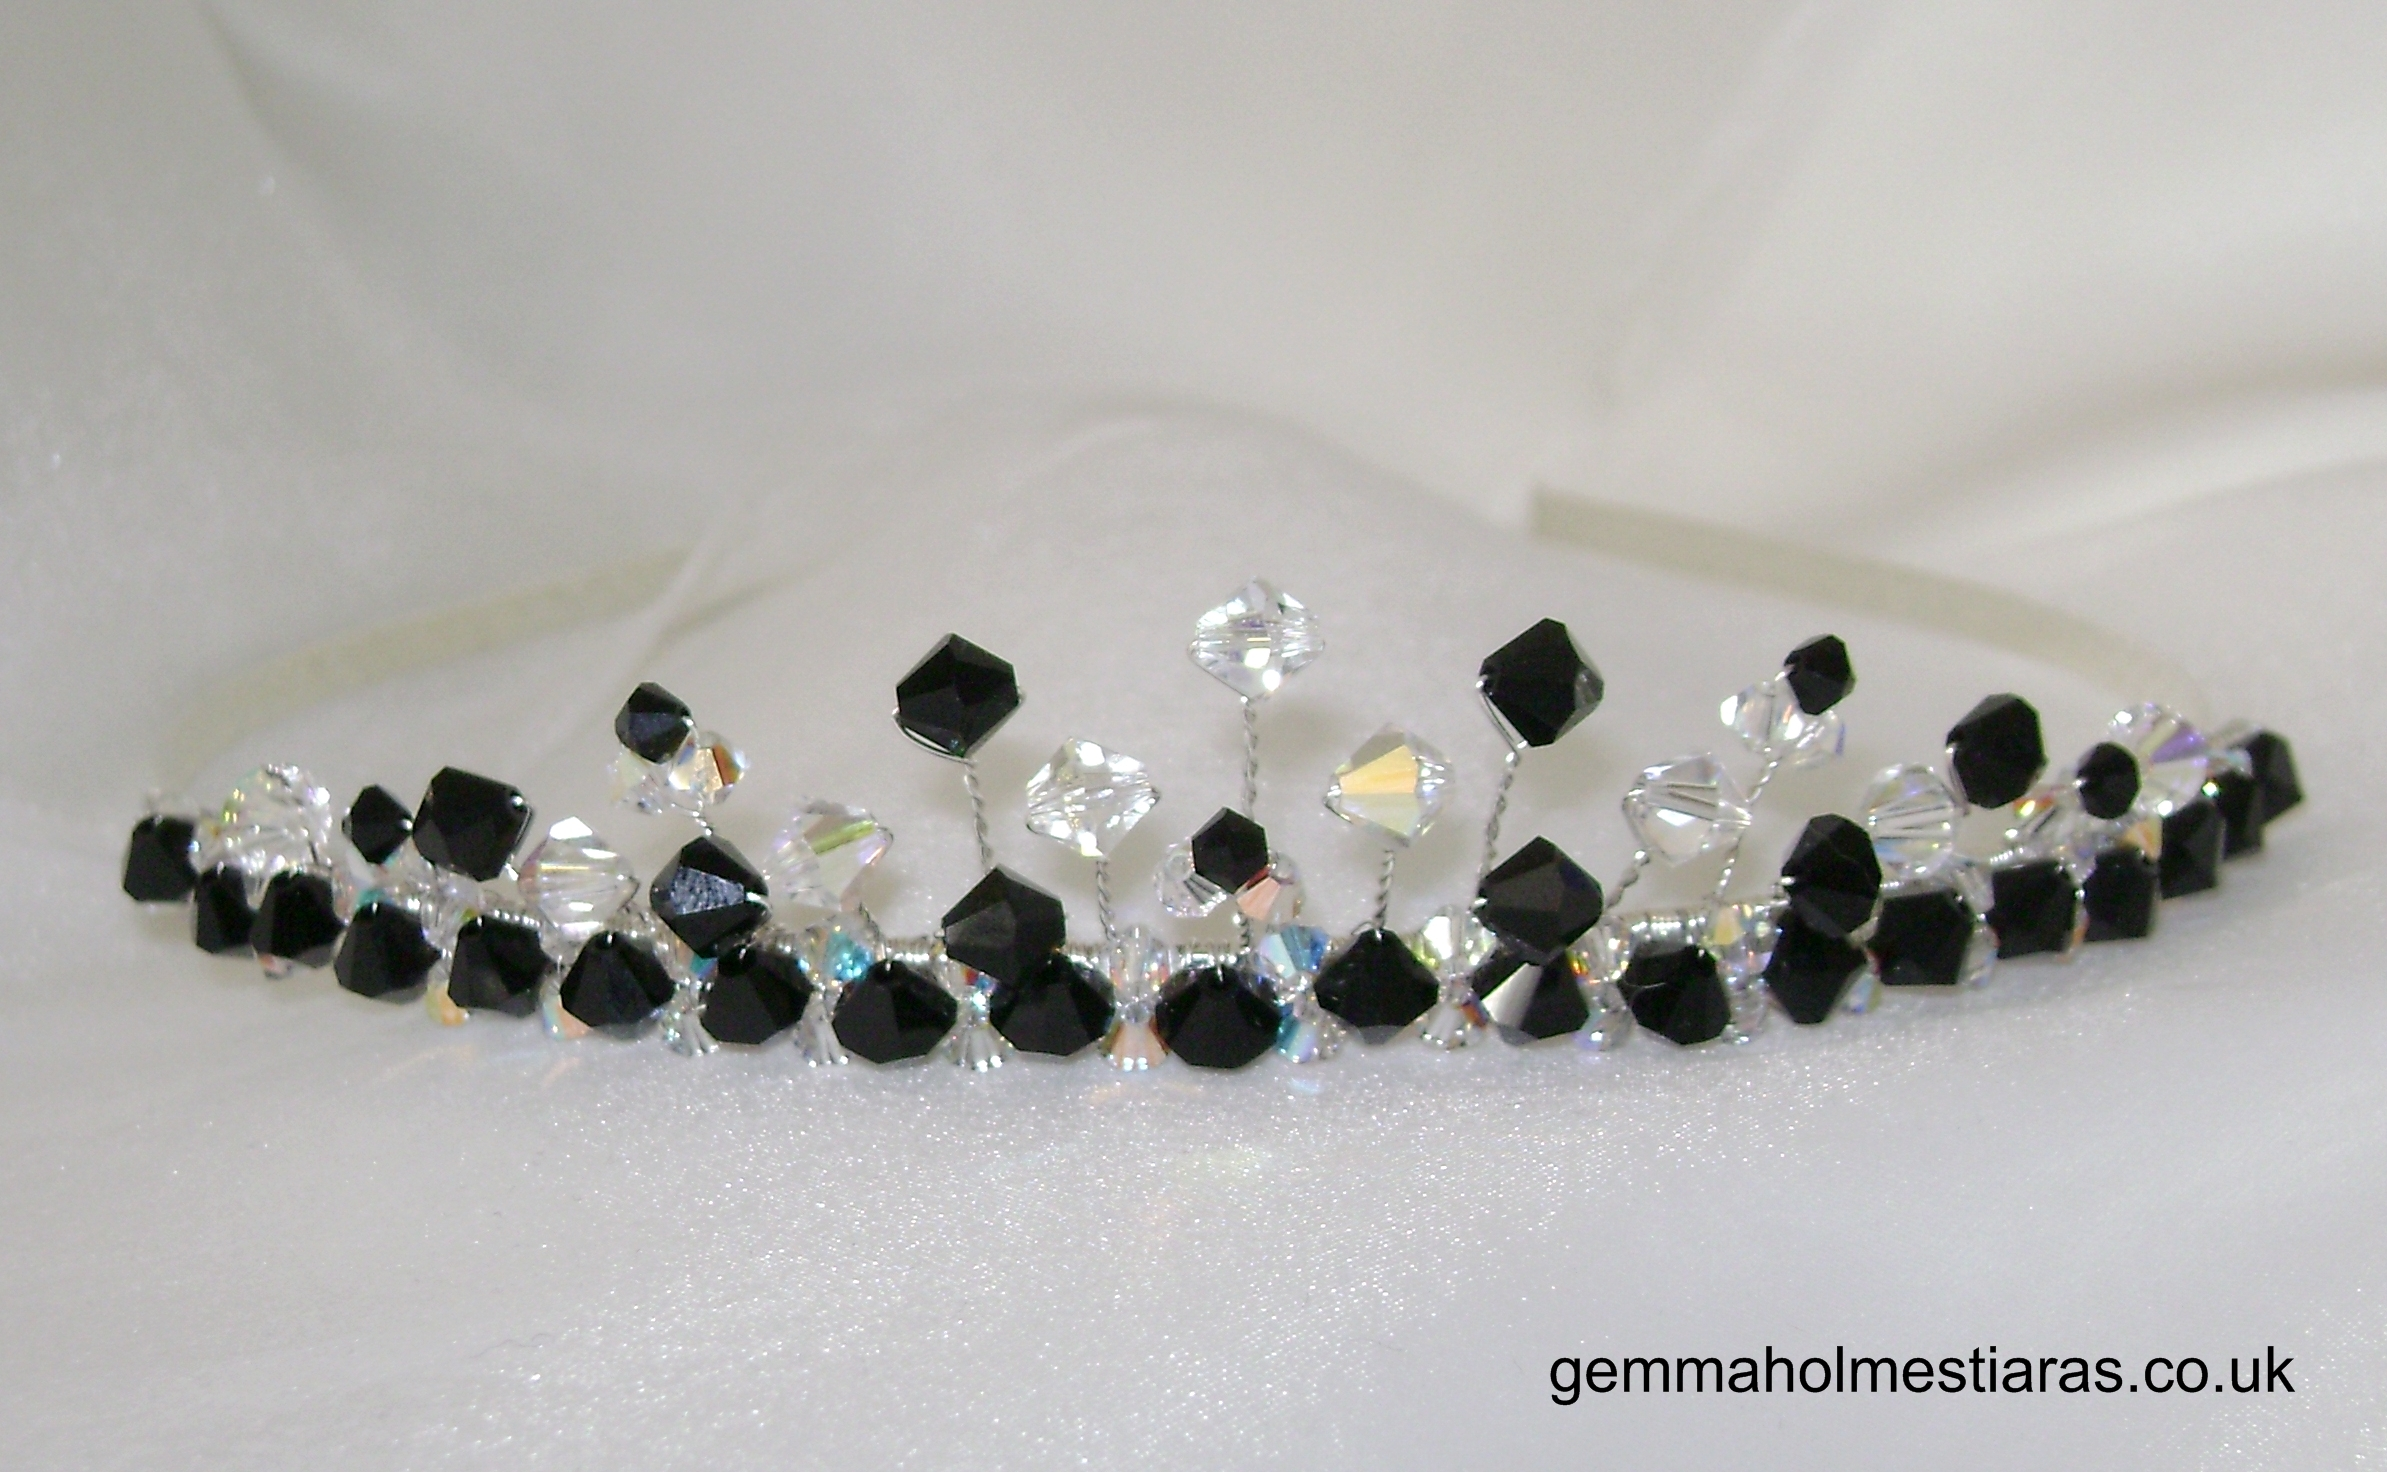 Jewelry, black, Tiaras, Bridesmaid, Tiara, Crystal, Small, Gemma holmes